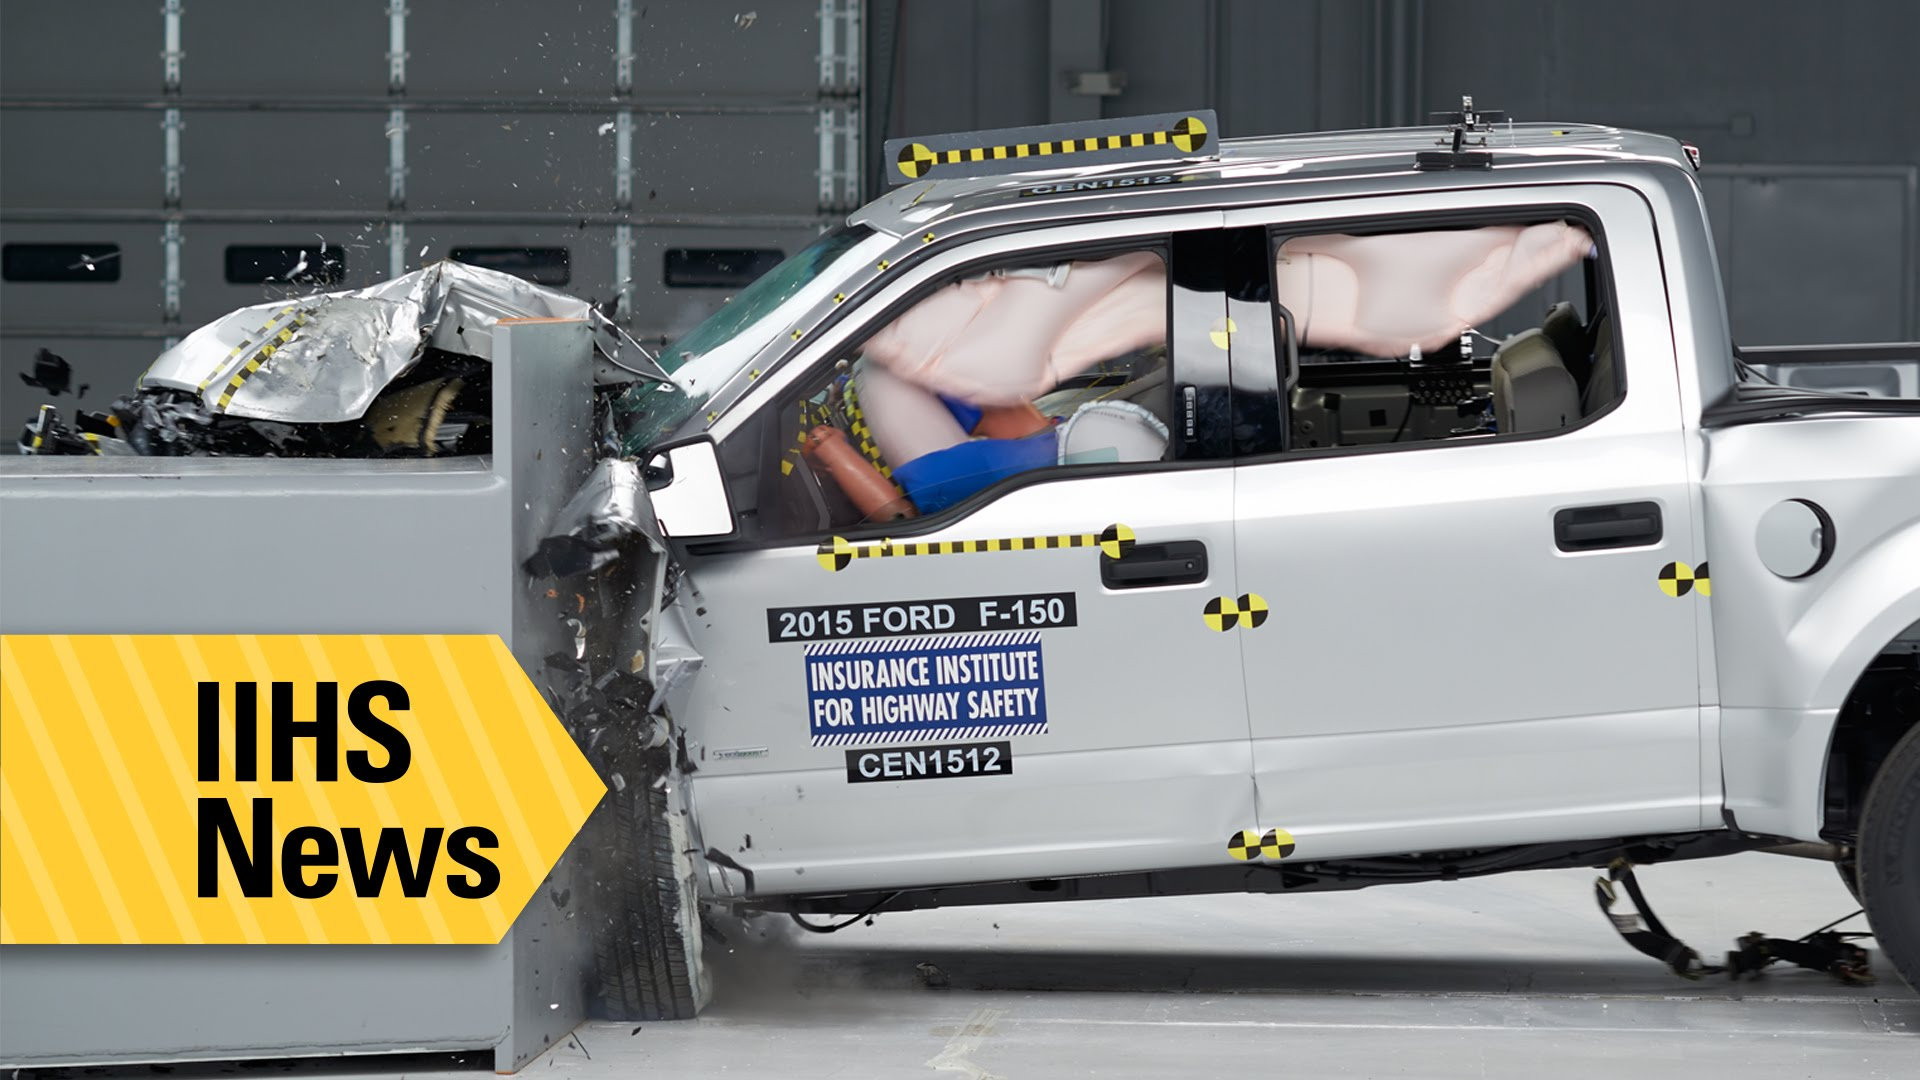 The Ford F150 S New Aluminum Body Has Resulted In It Being Rated One Of Insutes Top Safety Vehicles